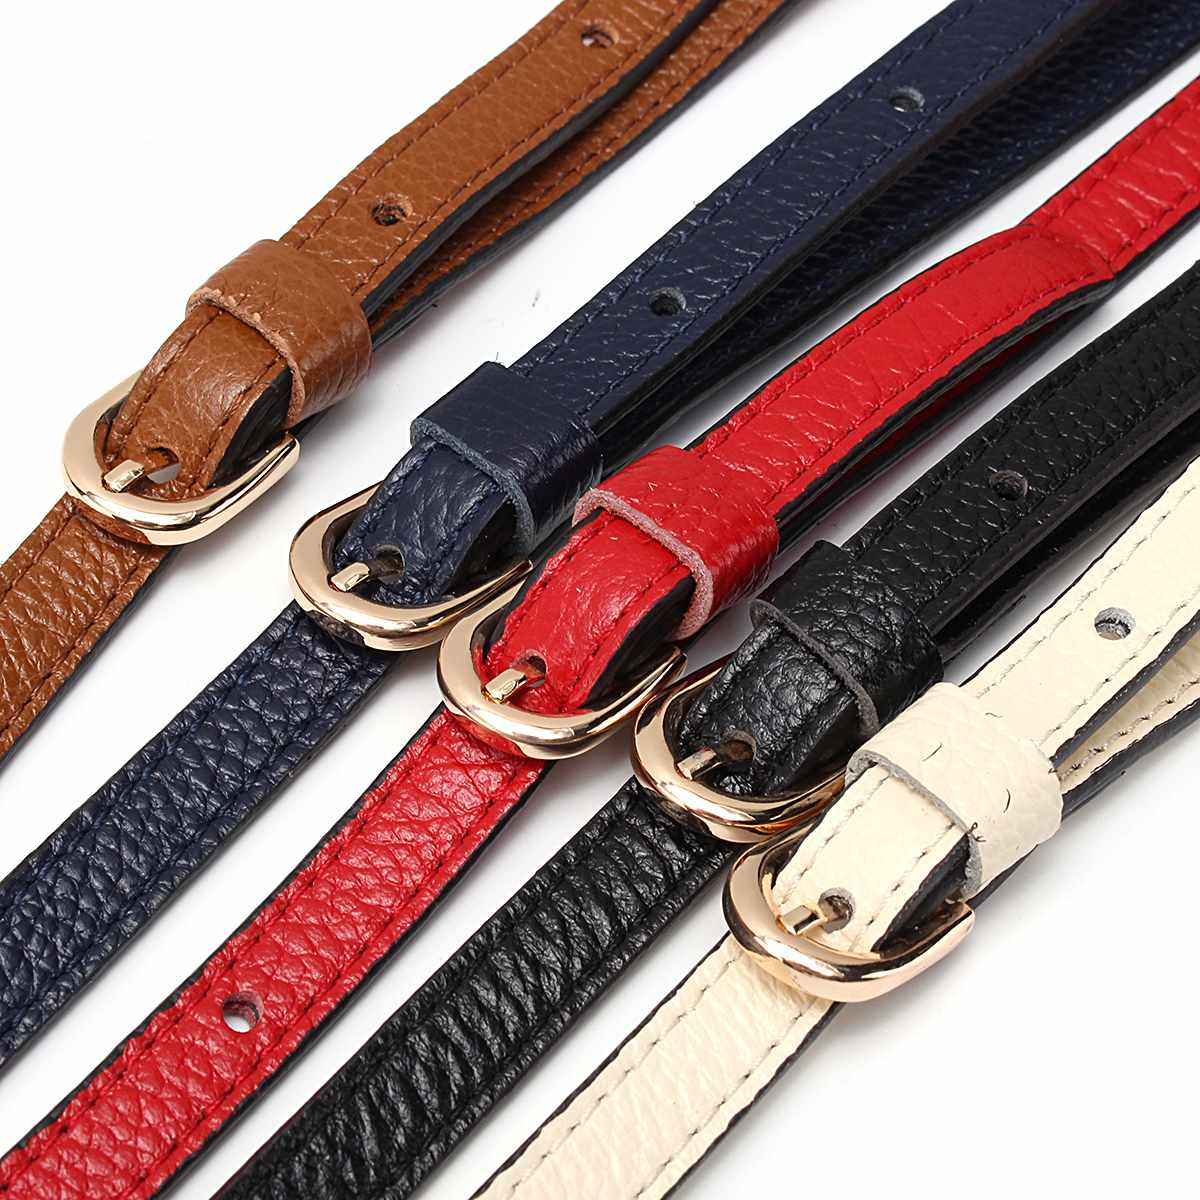 Cow Leather Bag Straps Replacement DIY Shoulder Bag Belts Adjustable Strap Belt For Long Straps Handbag Belt Accessories Parts